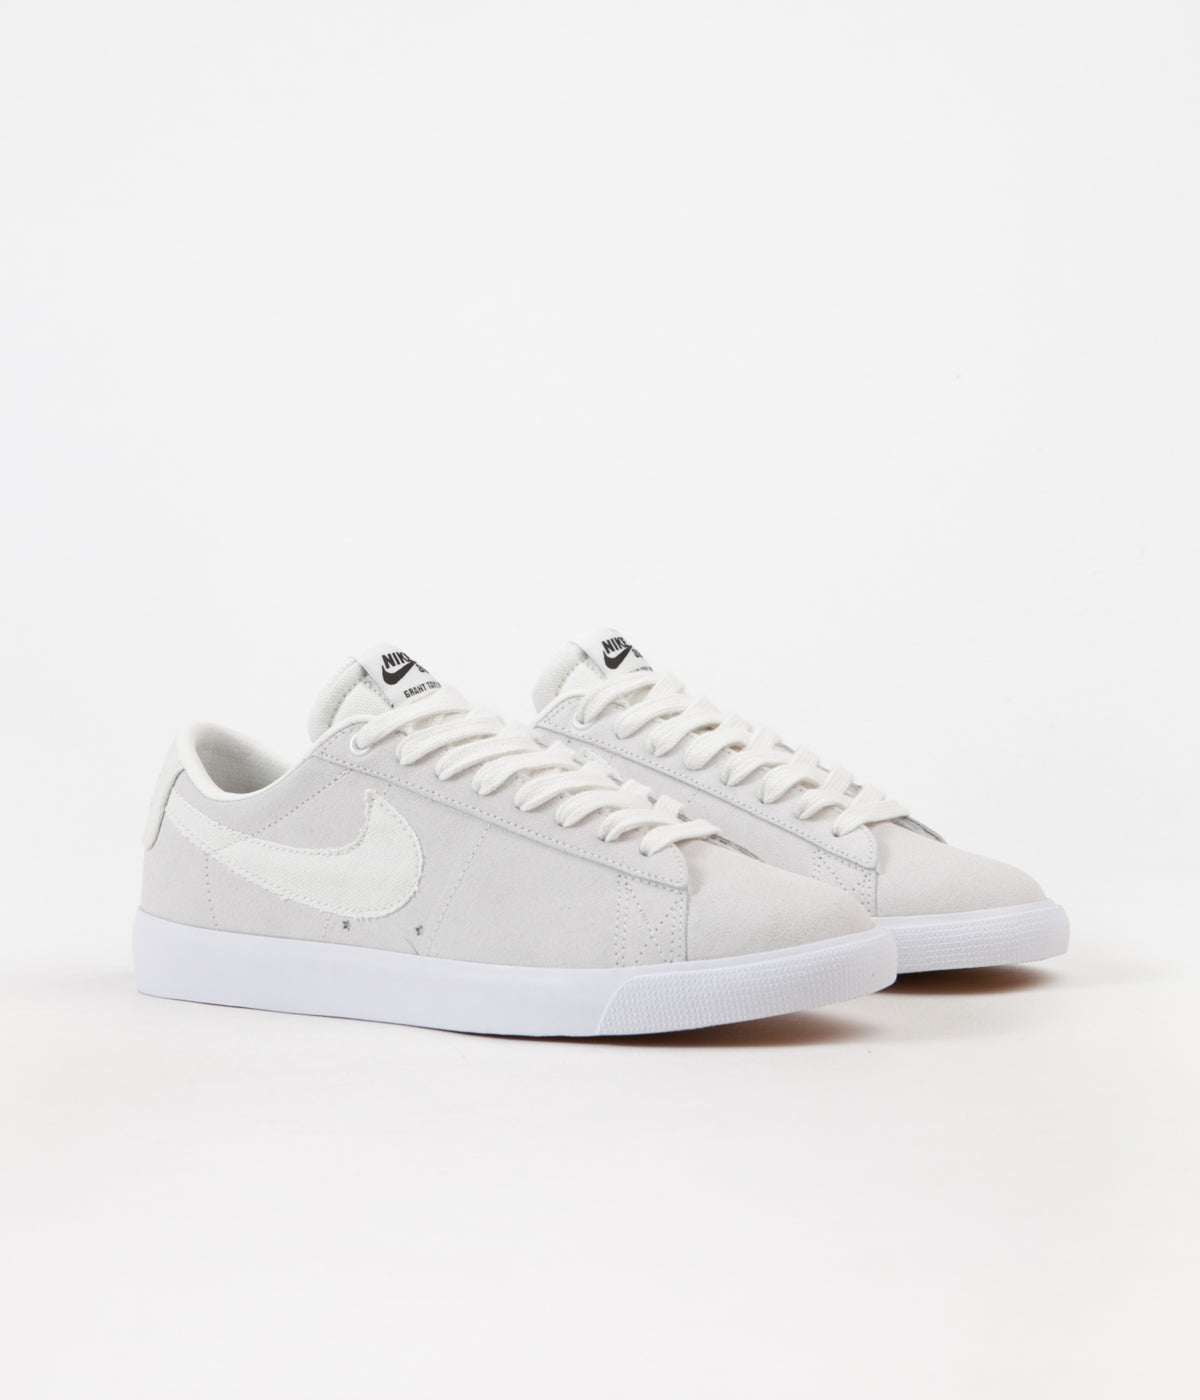 b5ee465d7f4579 ... Nike SB Blazer Low GT Shoes - Summit White   Summit White - Obsidian ...